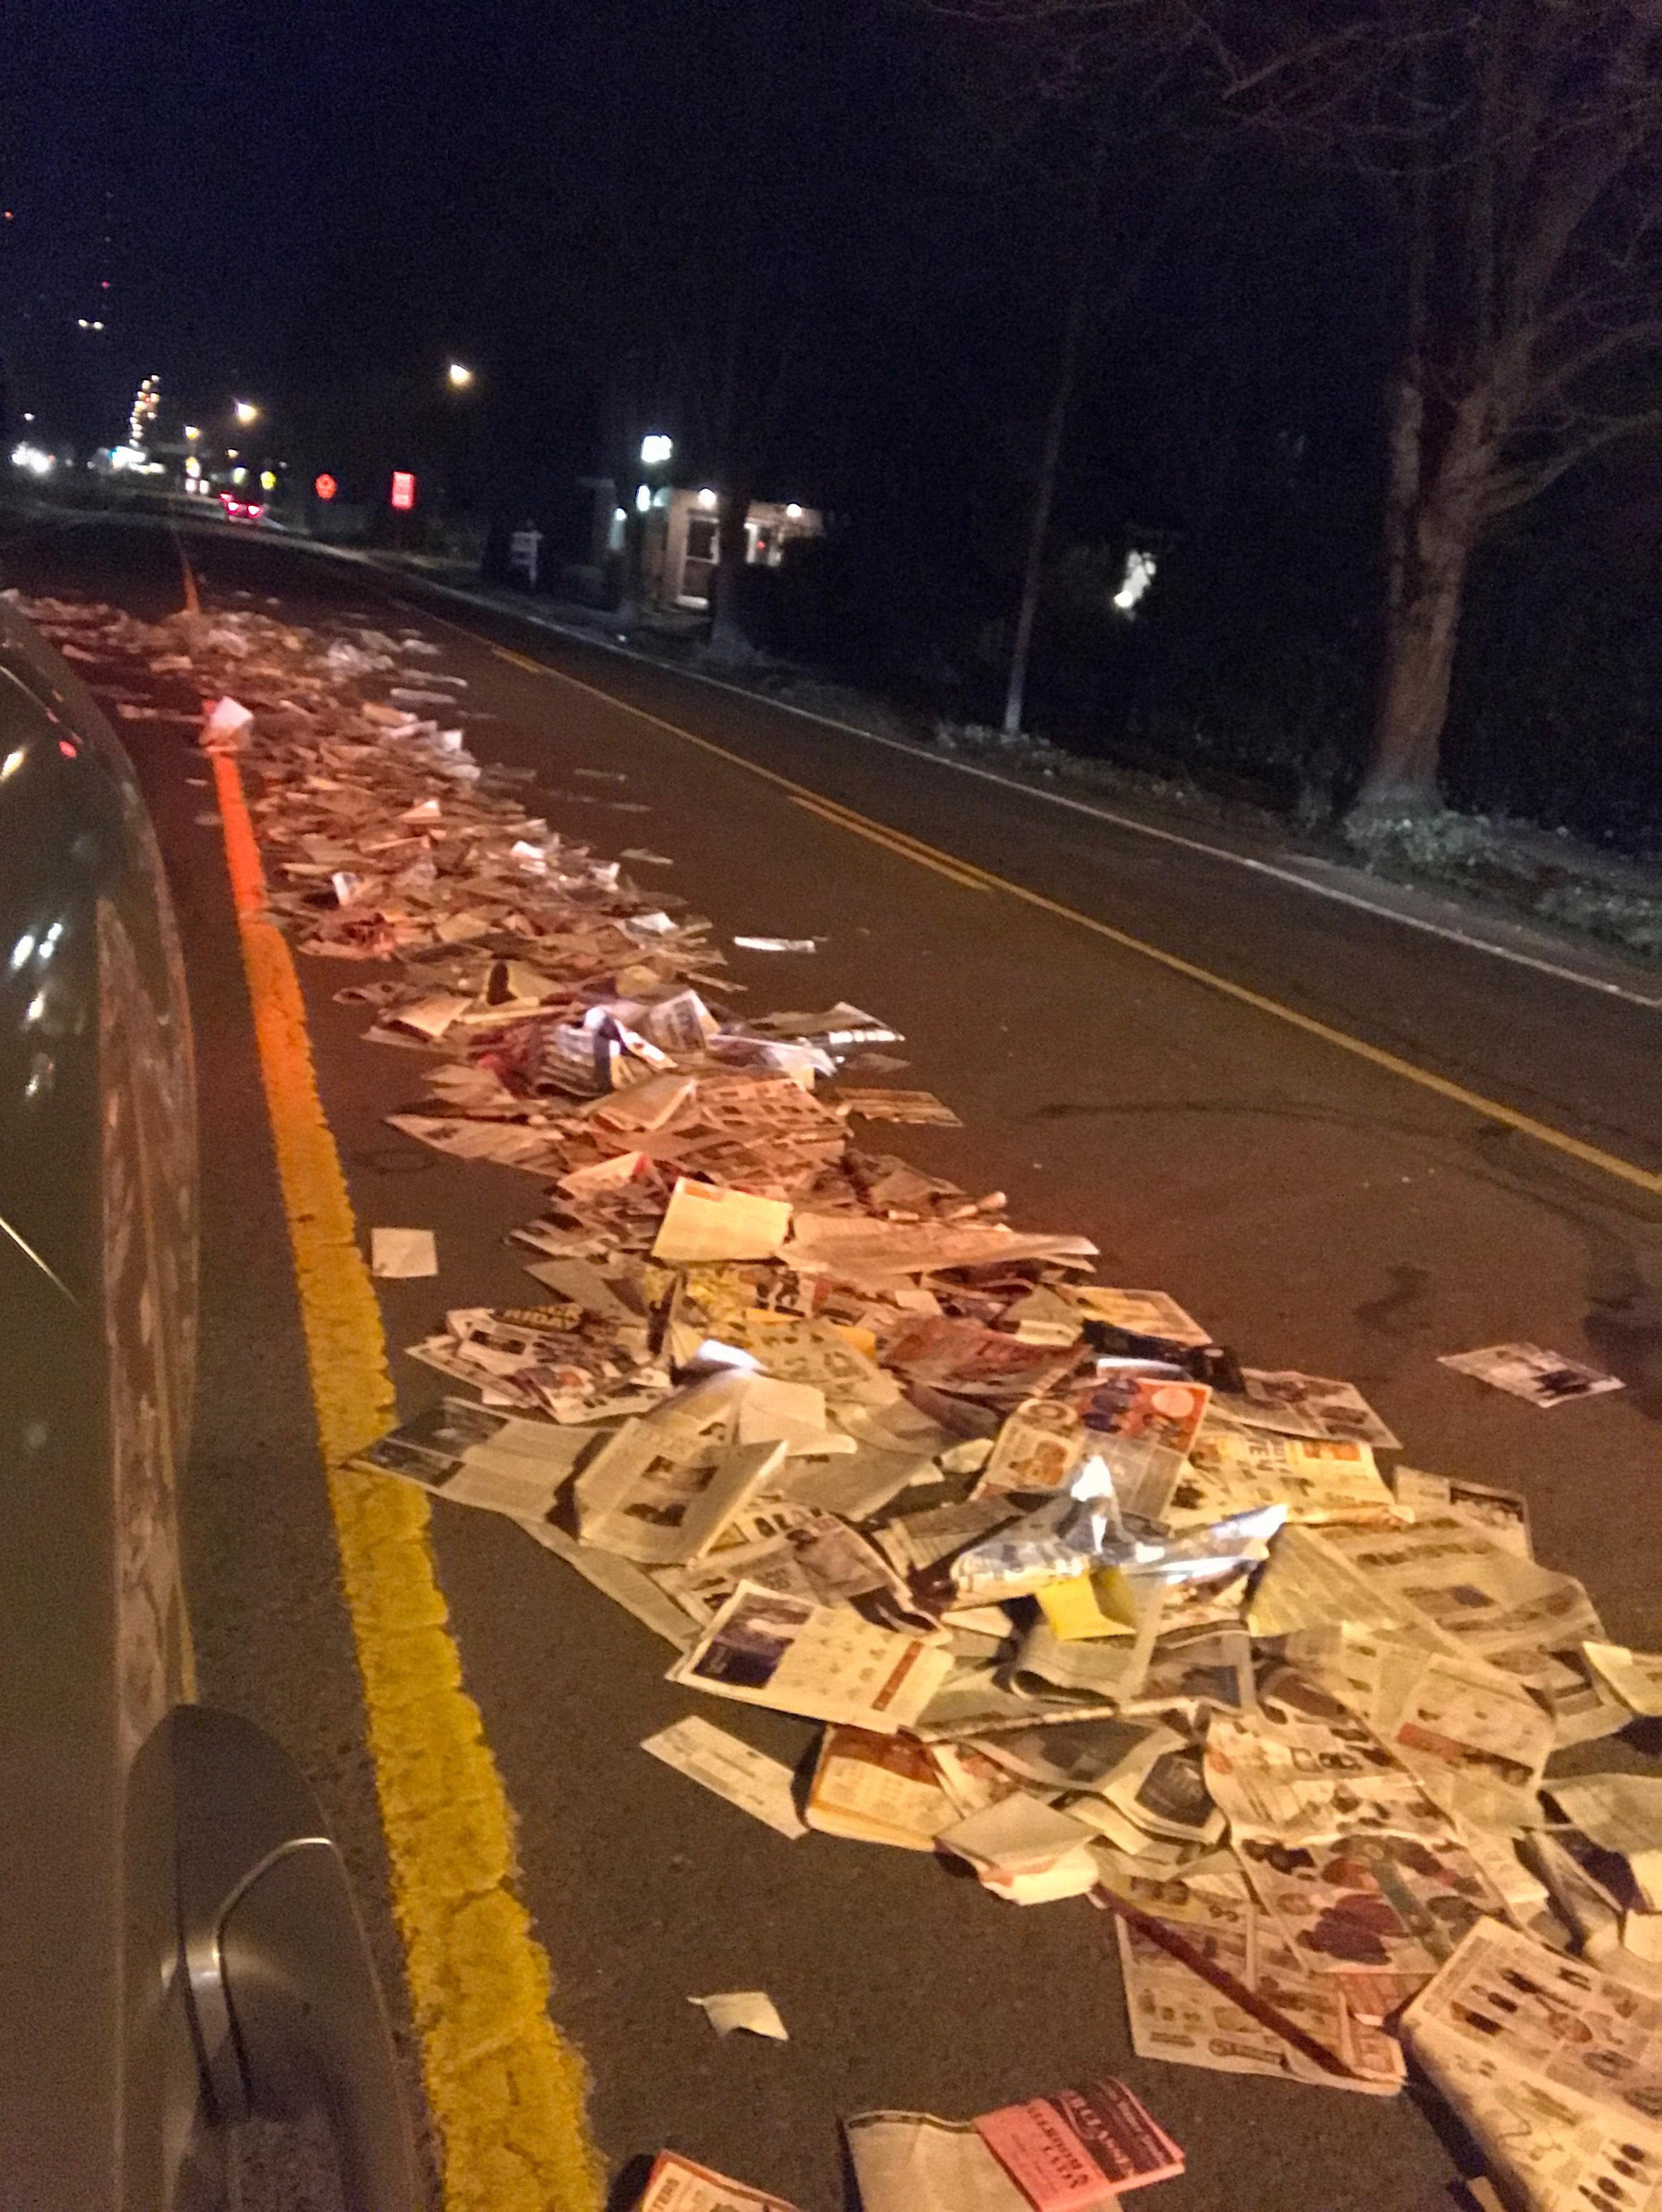 A reporter found newspapers spread across Chambers Street at 13th Avenue on Monday evening, December 11, 2017. (Clara Benitez)<p></p>